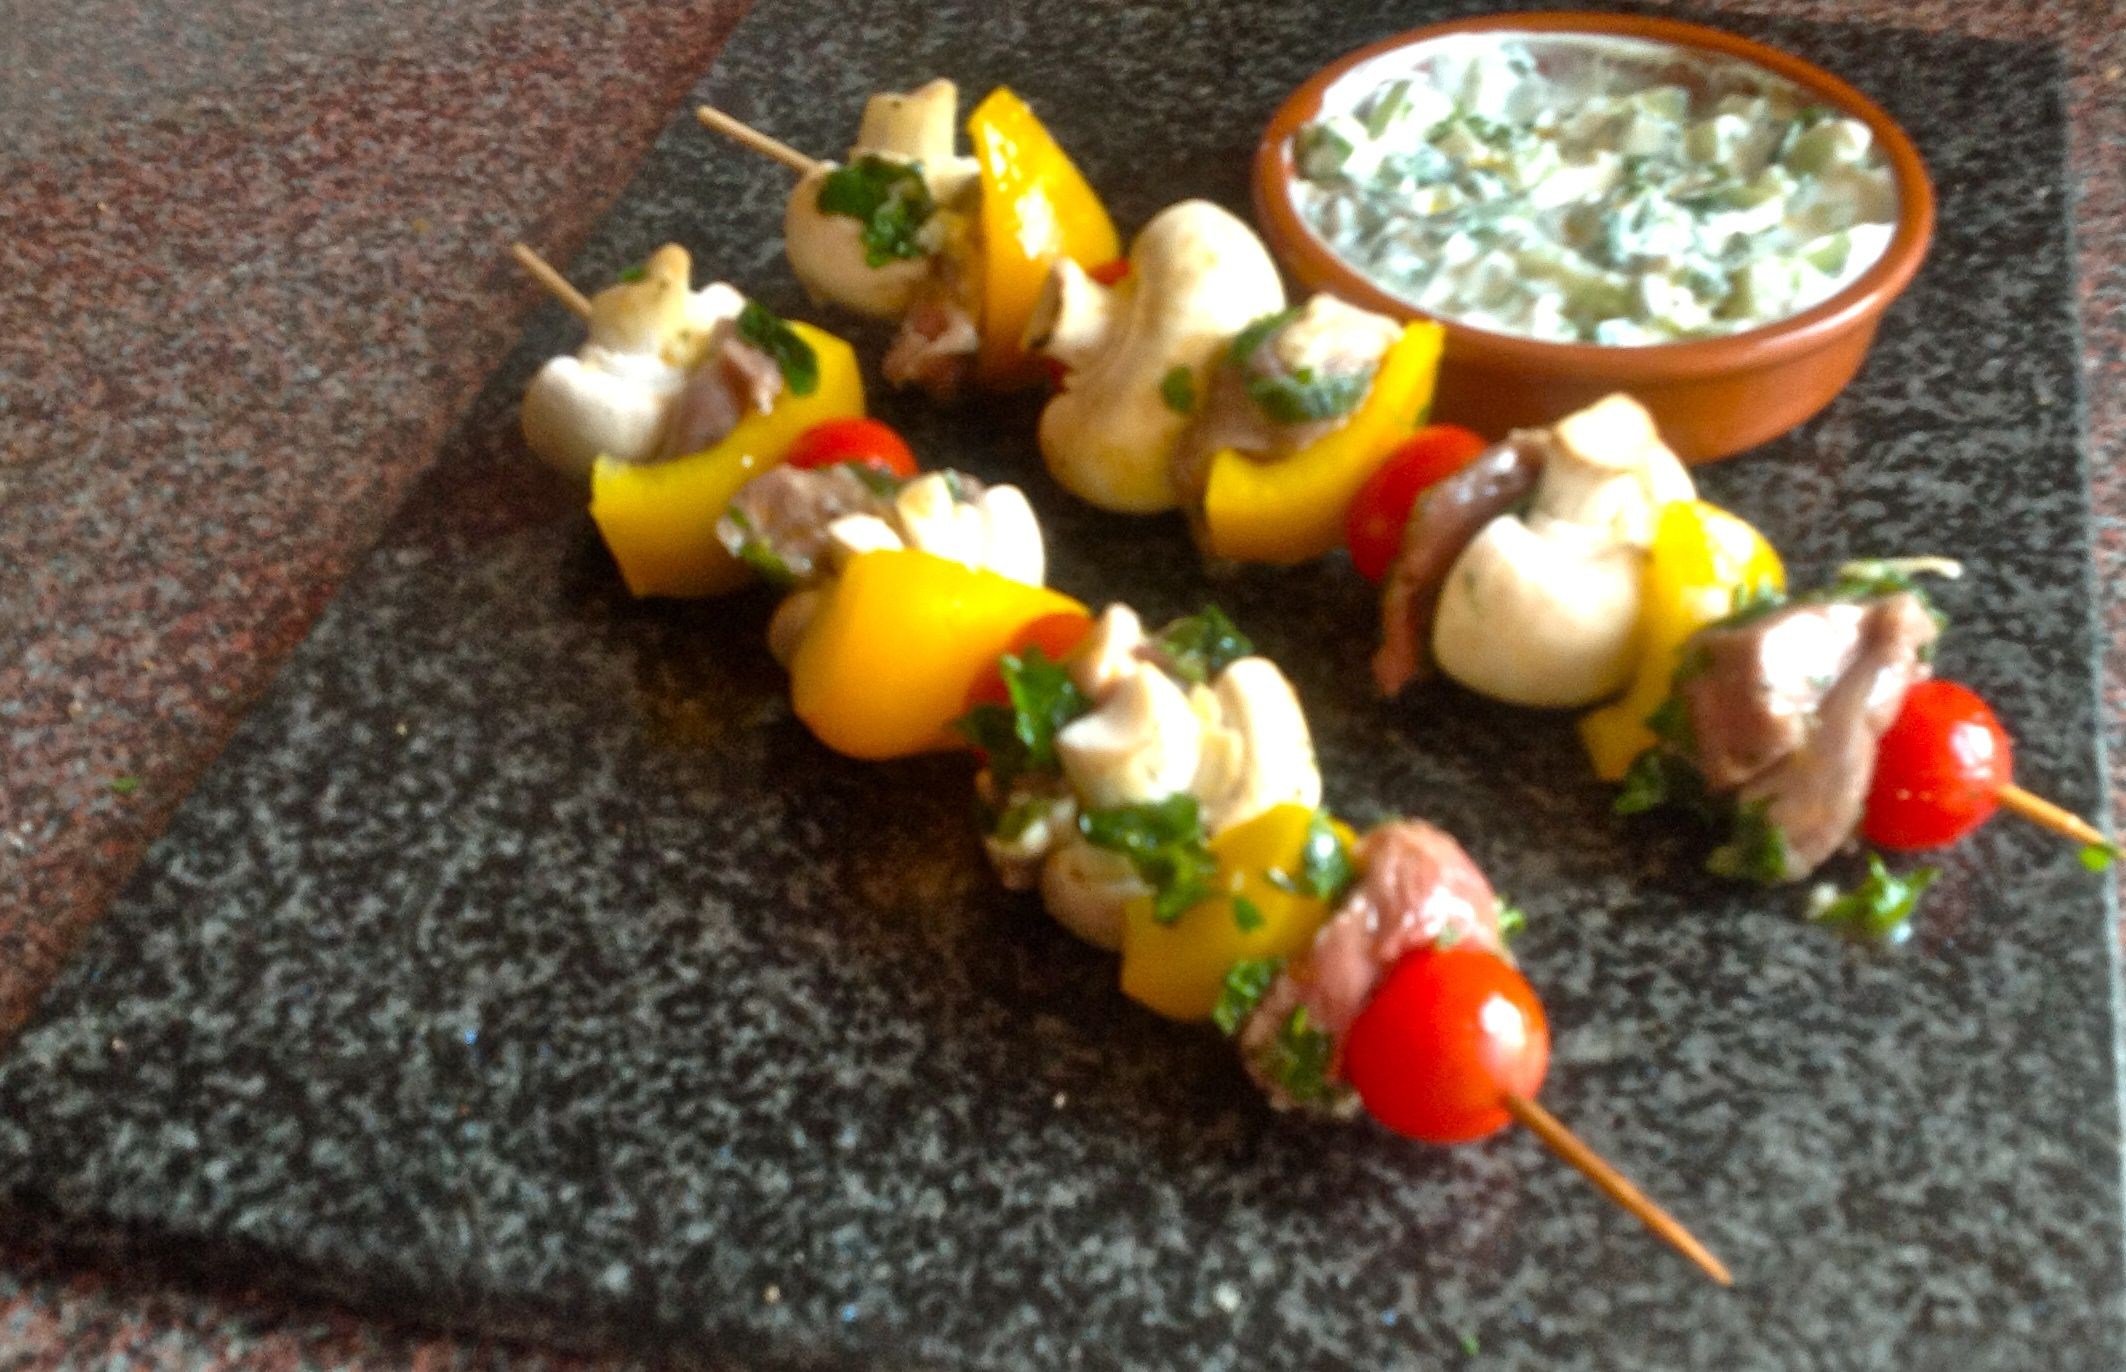 Lamb and vegetable skewers with cucumber raita | Eating Covent Garden